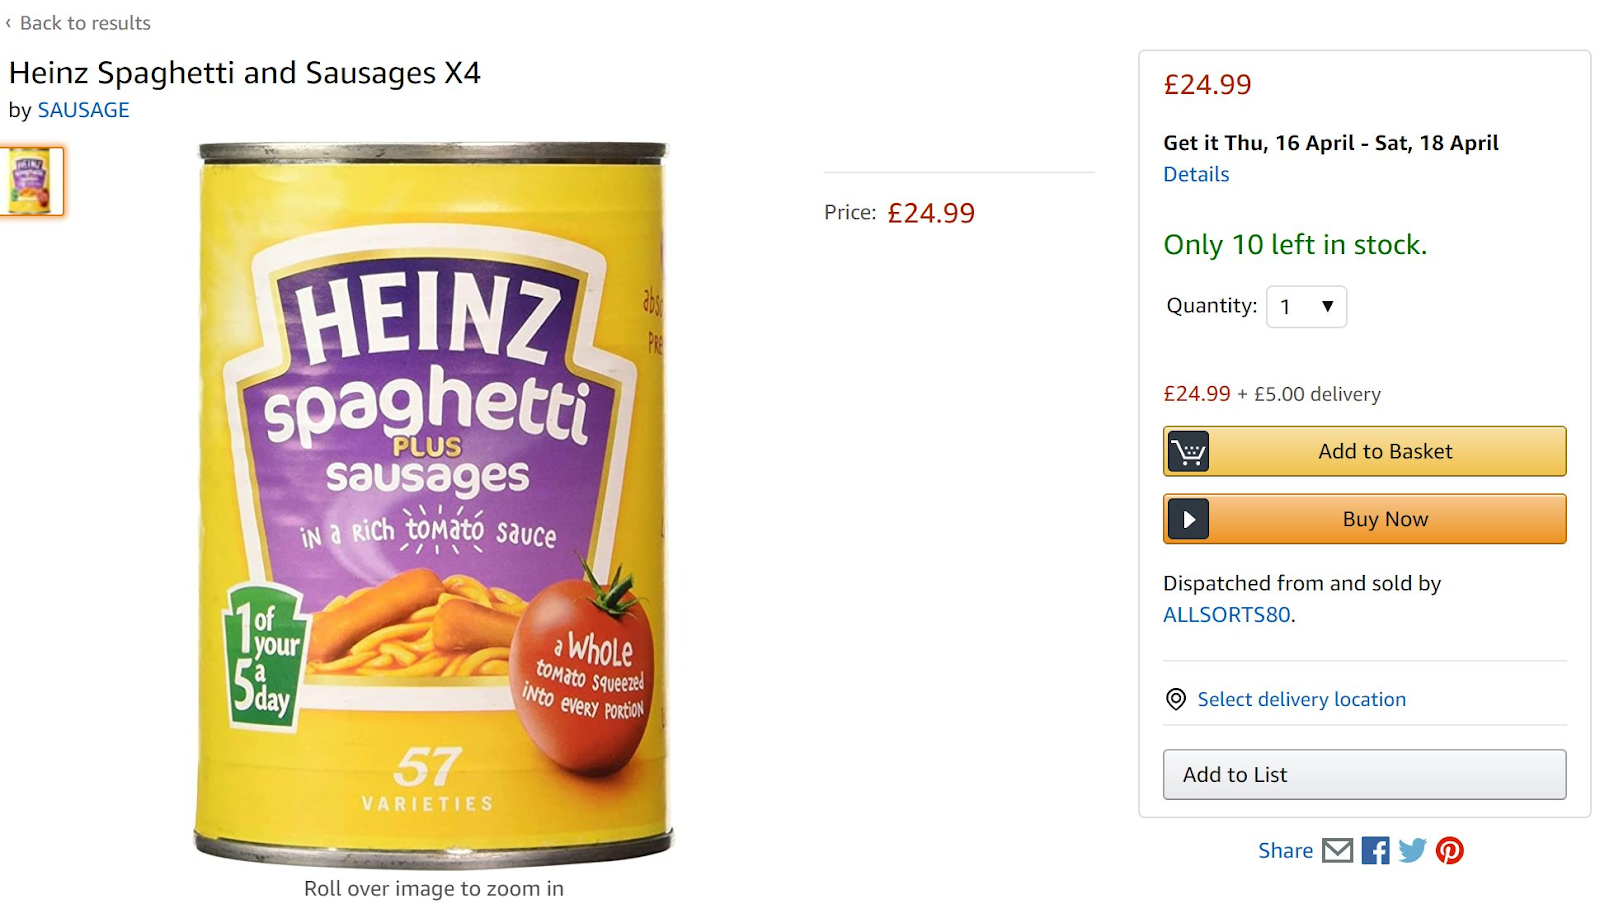 The price for a 4-pack of Heinz Spaghetti Plus Sausages went up to 24 pounds versus the normal price of 4 pounds